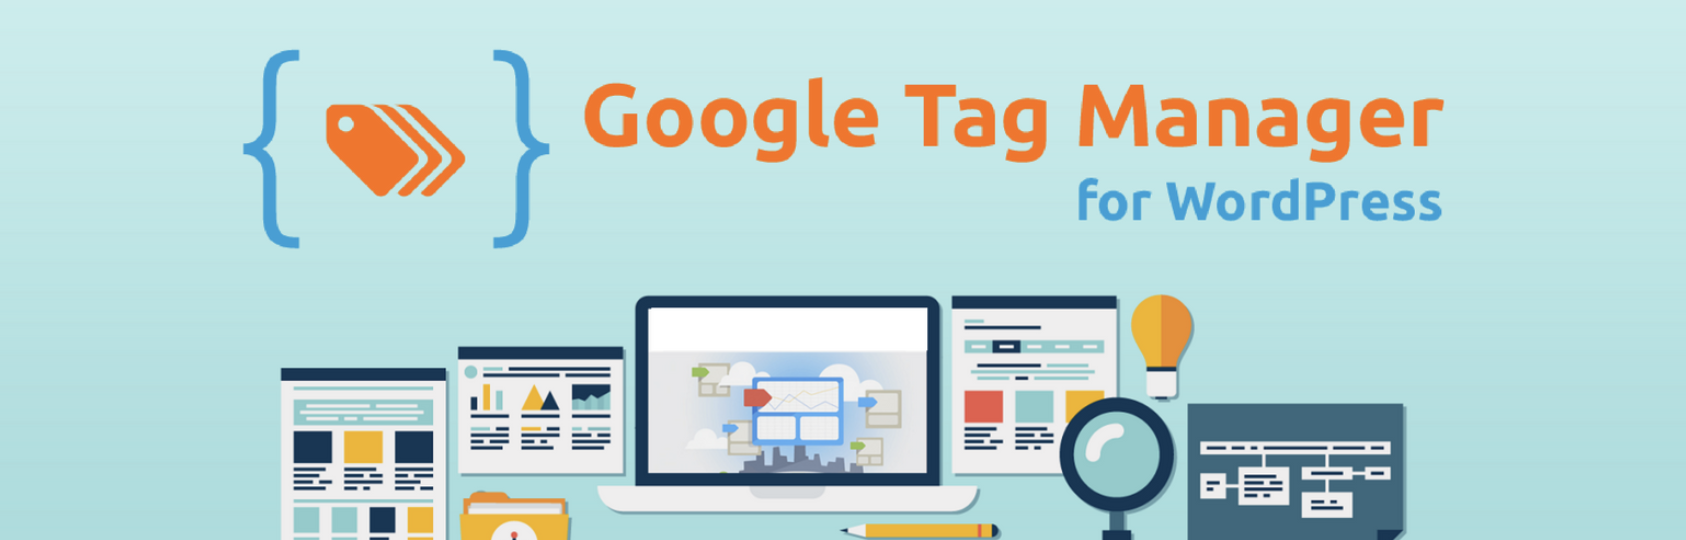 Google Tag Manager cho WordPress